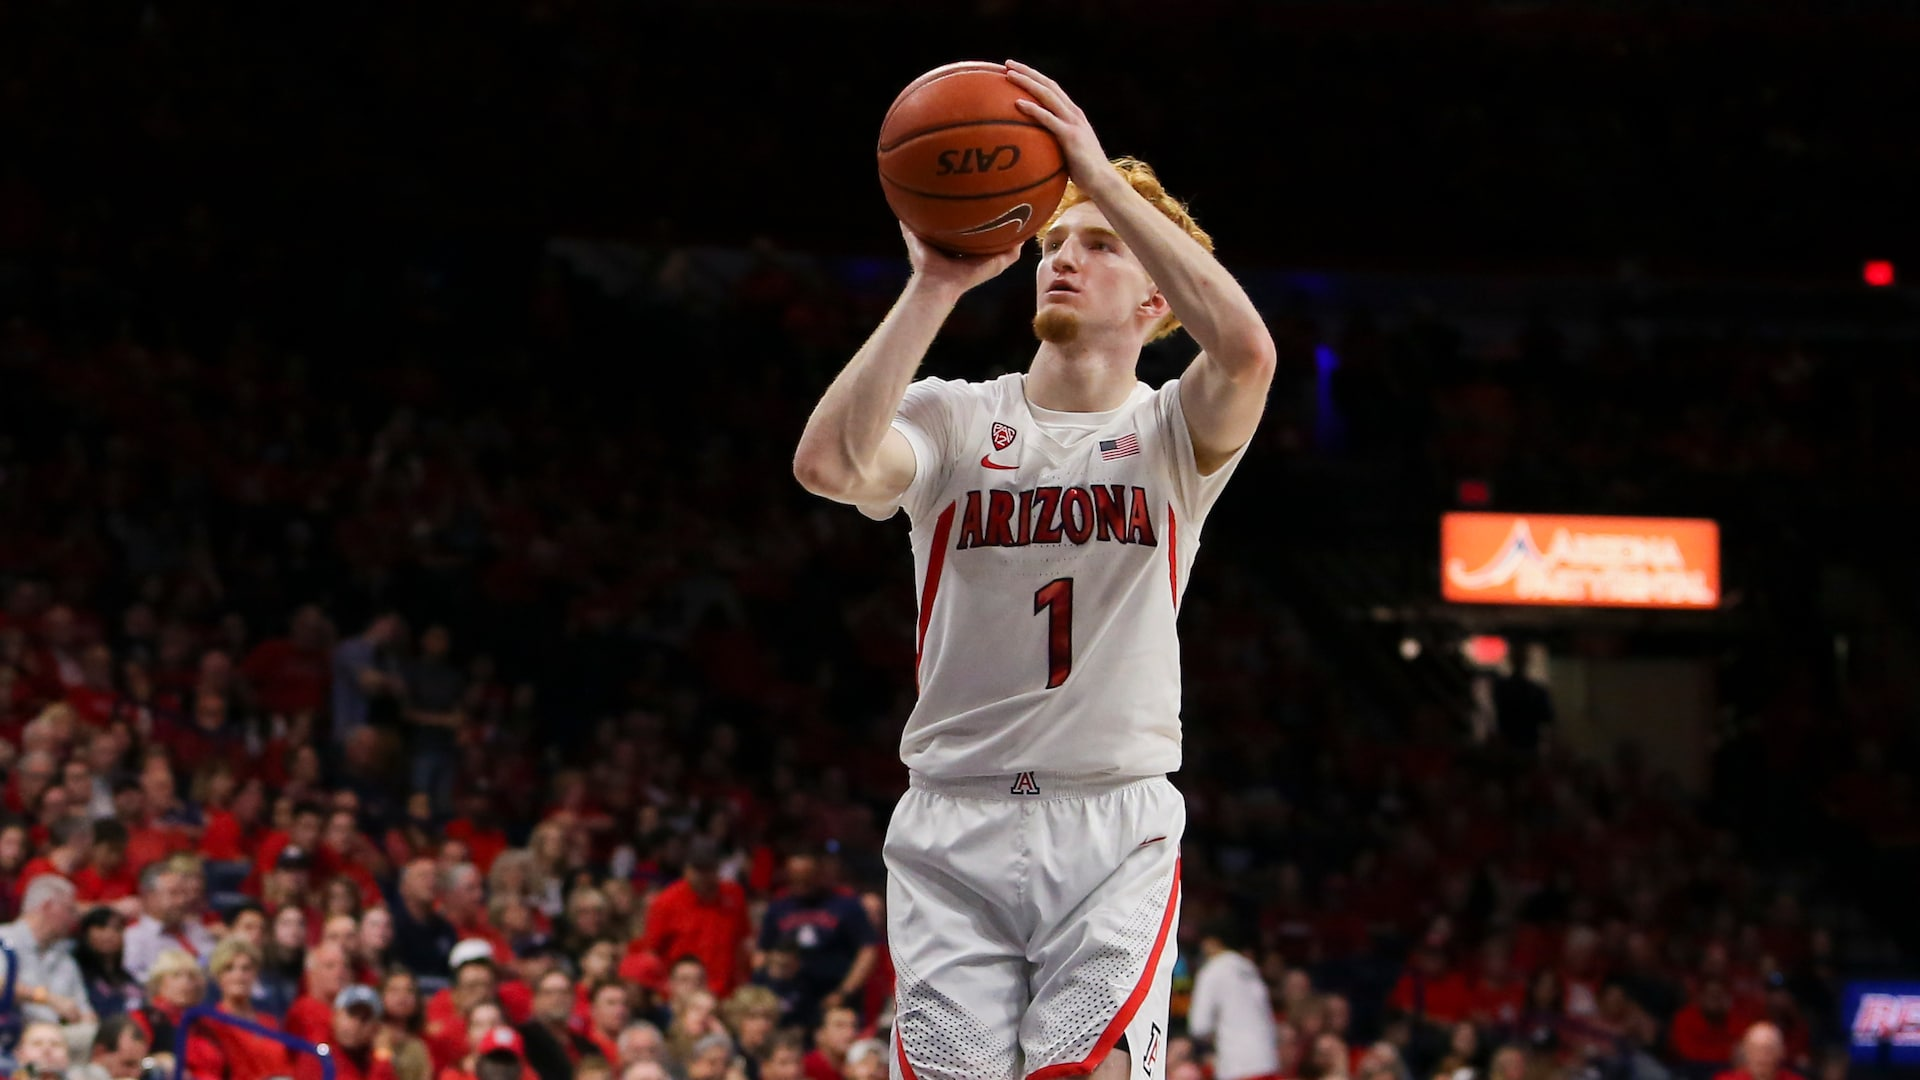 Arizona point guard Mannion declares for NBA Draft